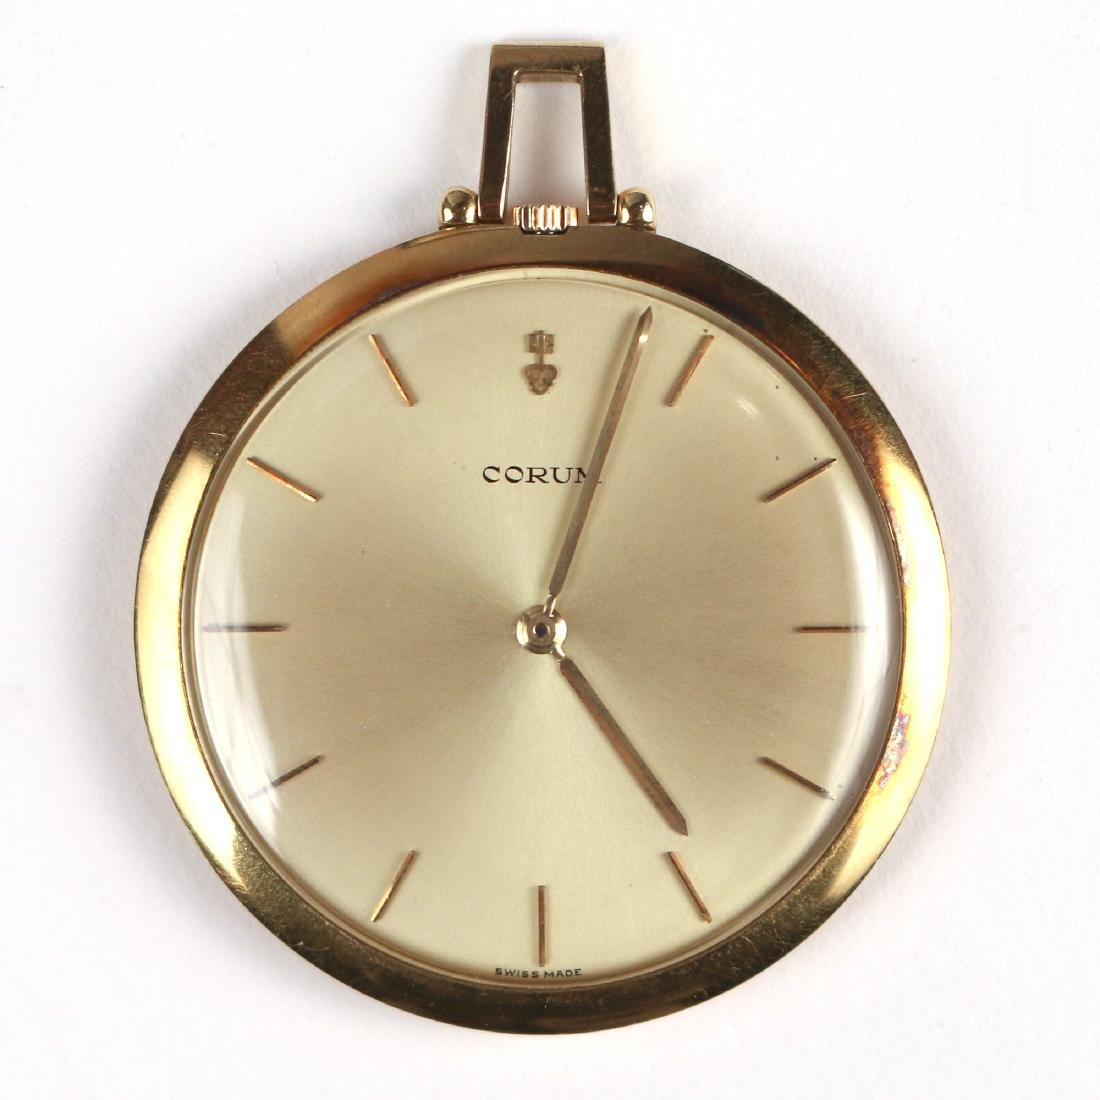 CORUM 18K GOLD POCKETWATCH